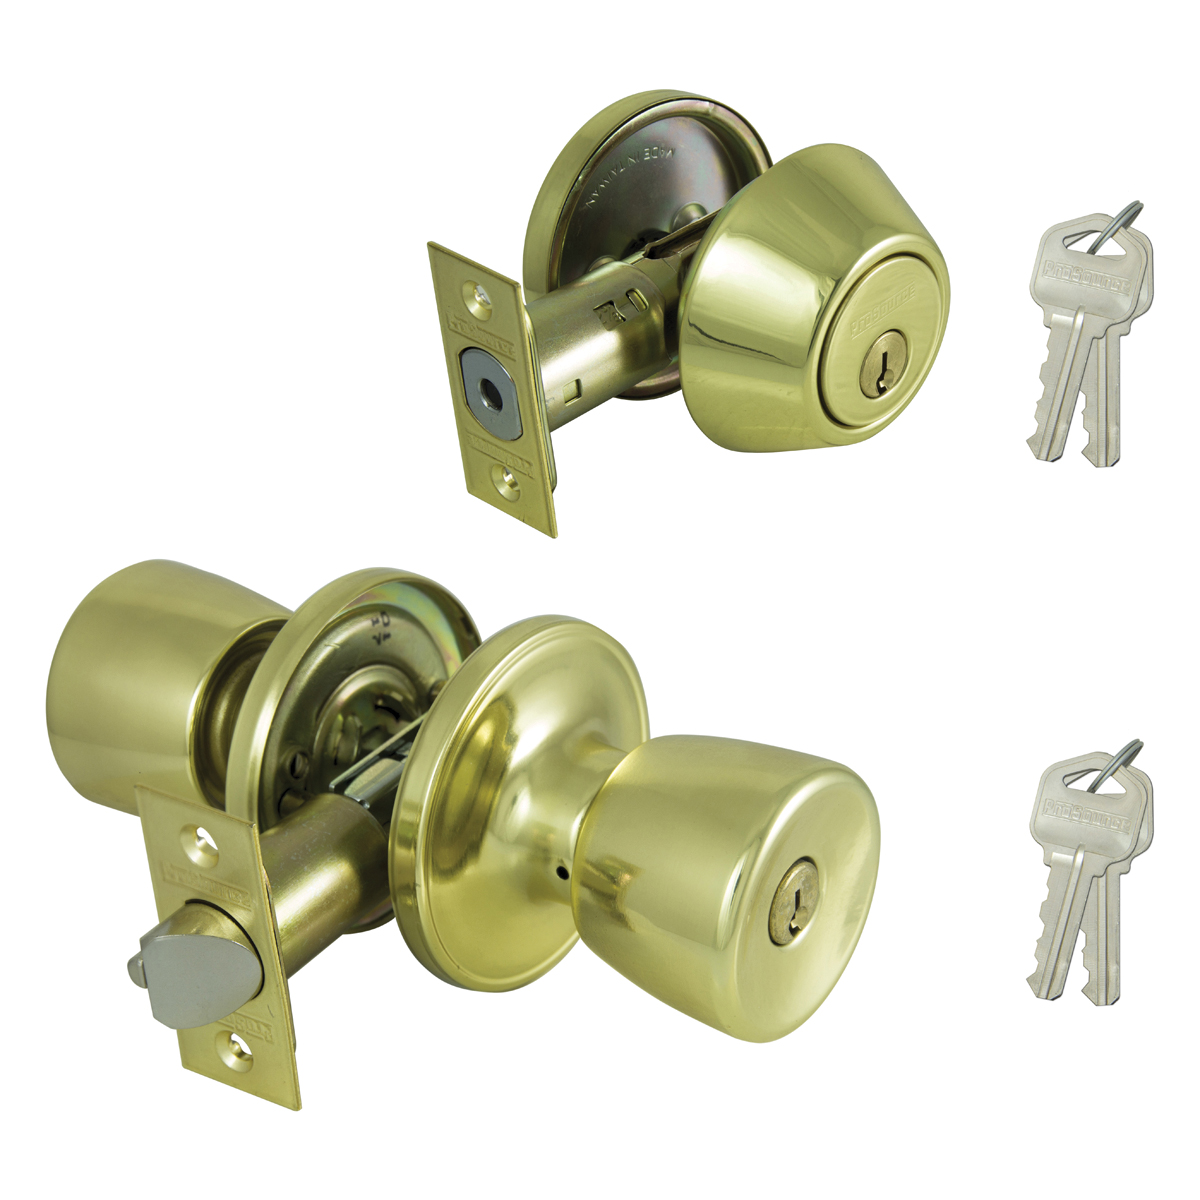 Picture of Prosource BS7B1-PS Deadbolt and Entry Lockset, Keyed Alike Key, 3 Grade, Brass